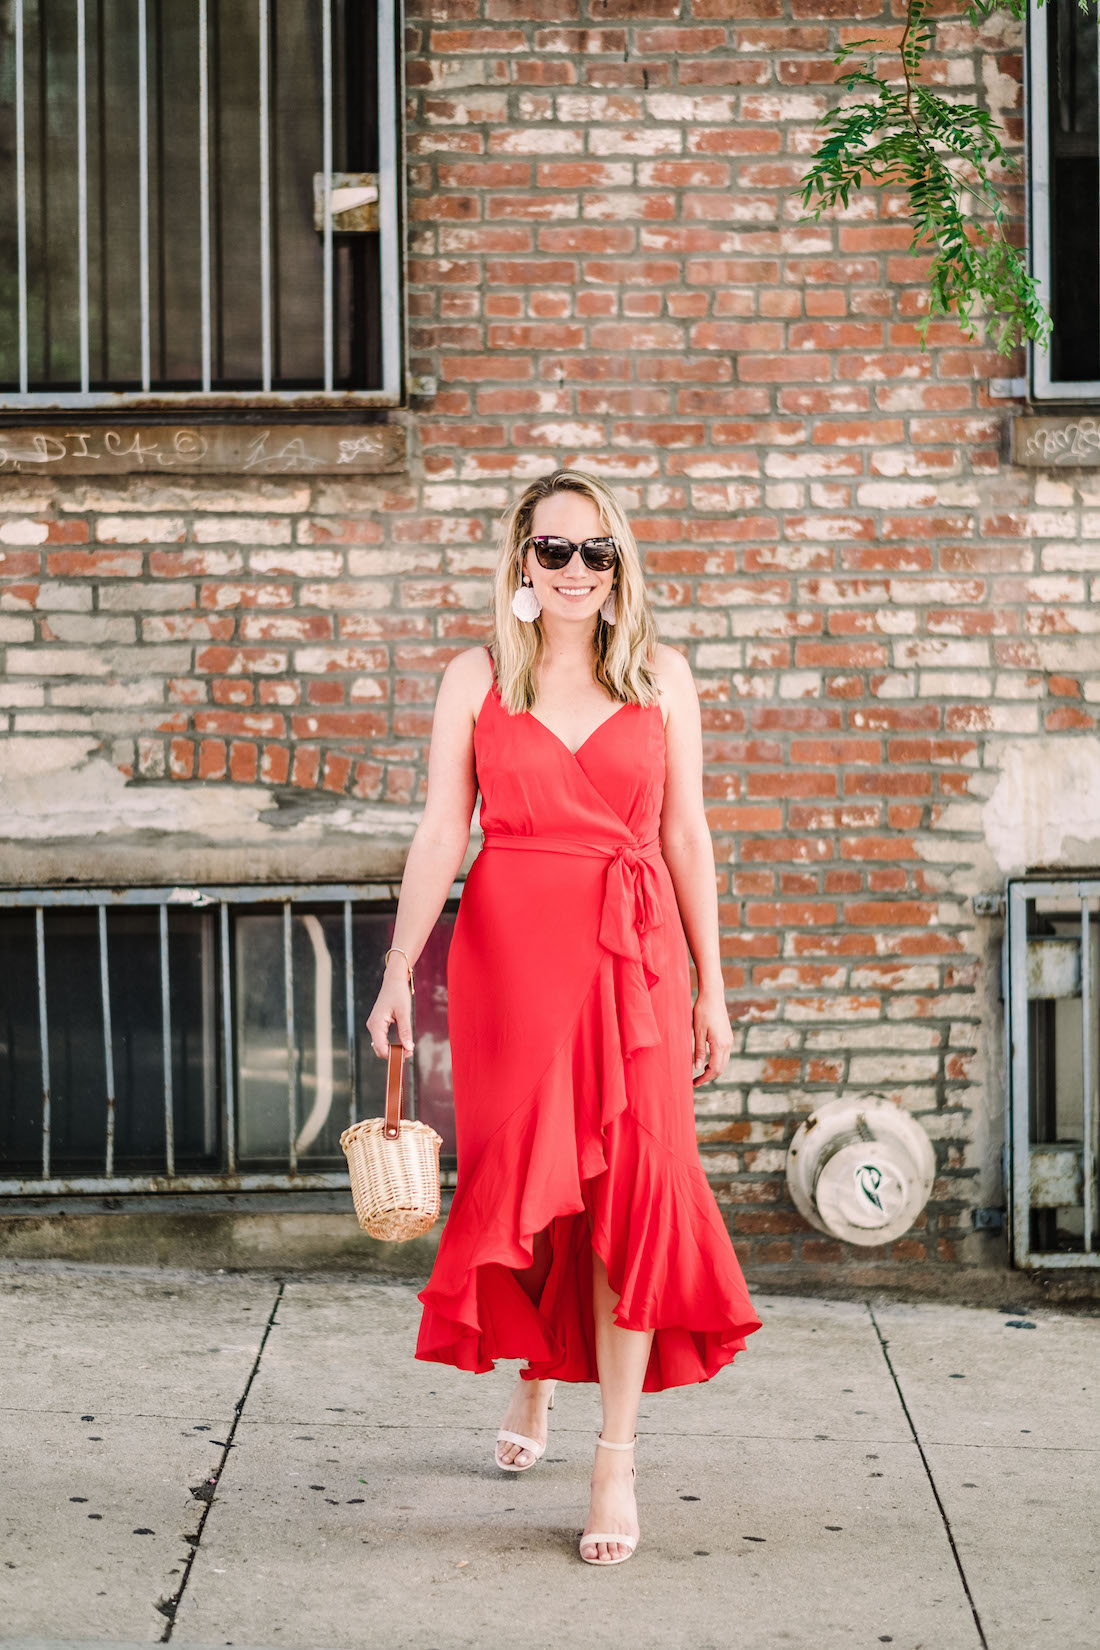 Emoji Dress - j.crew red wrap dress featured - The Stripe